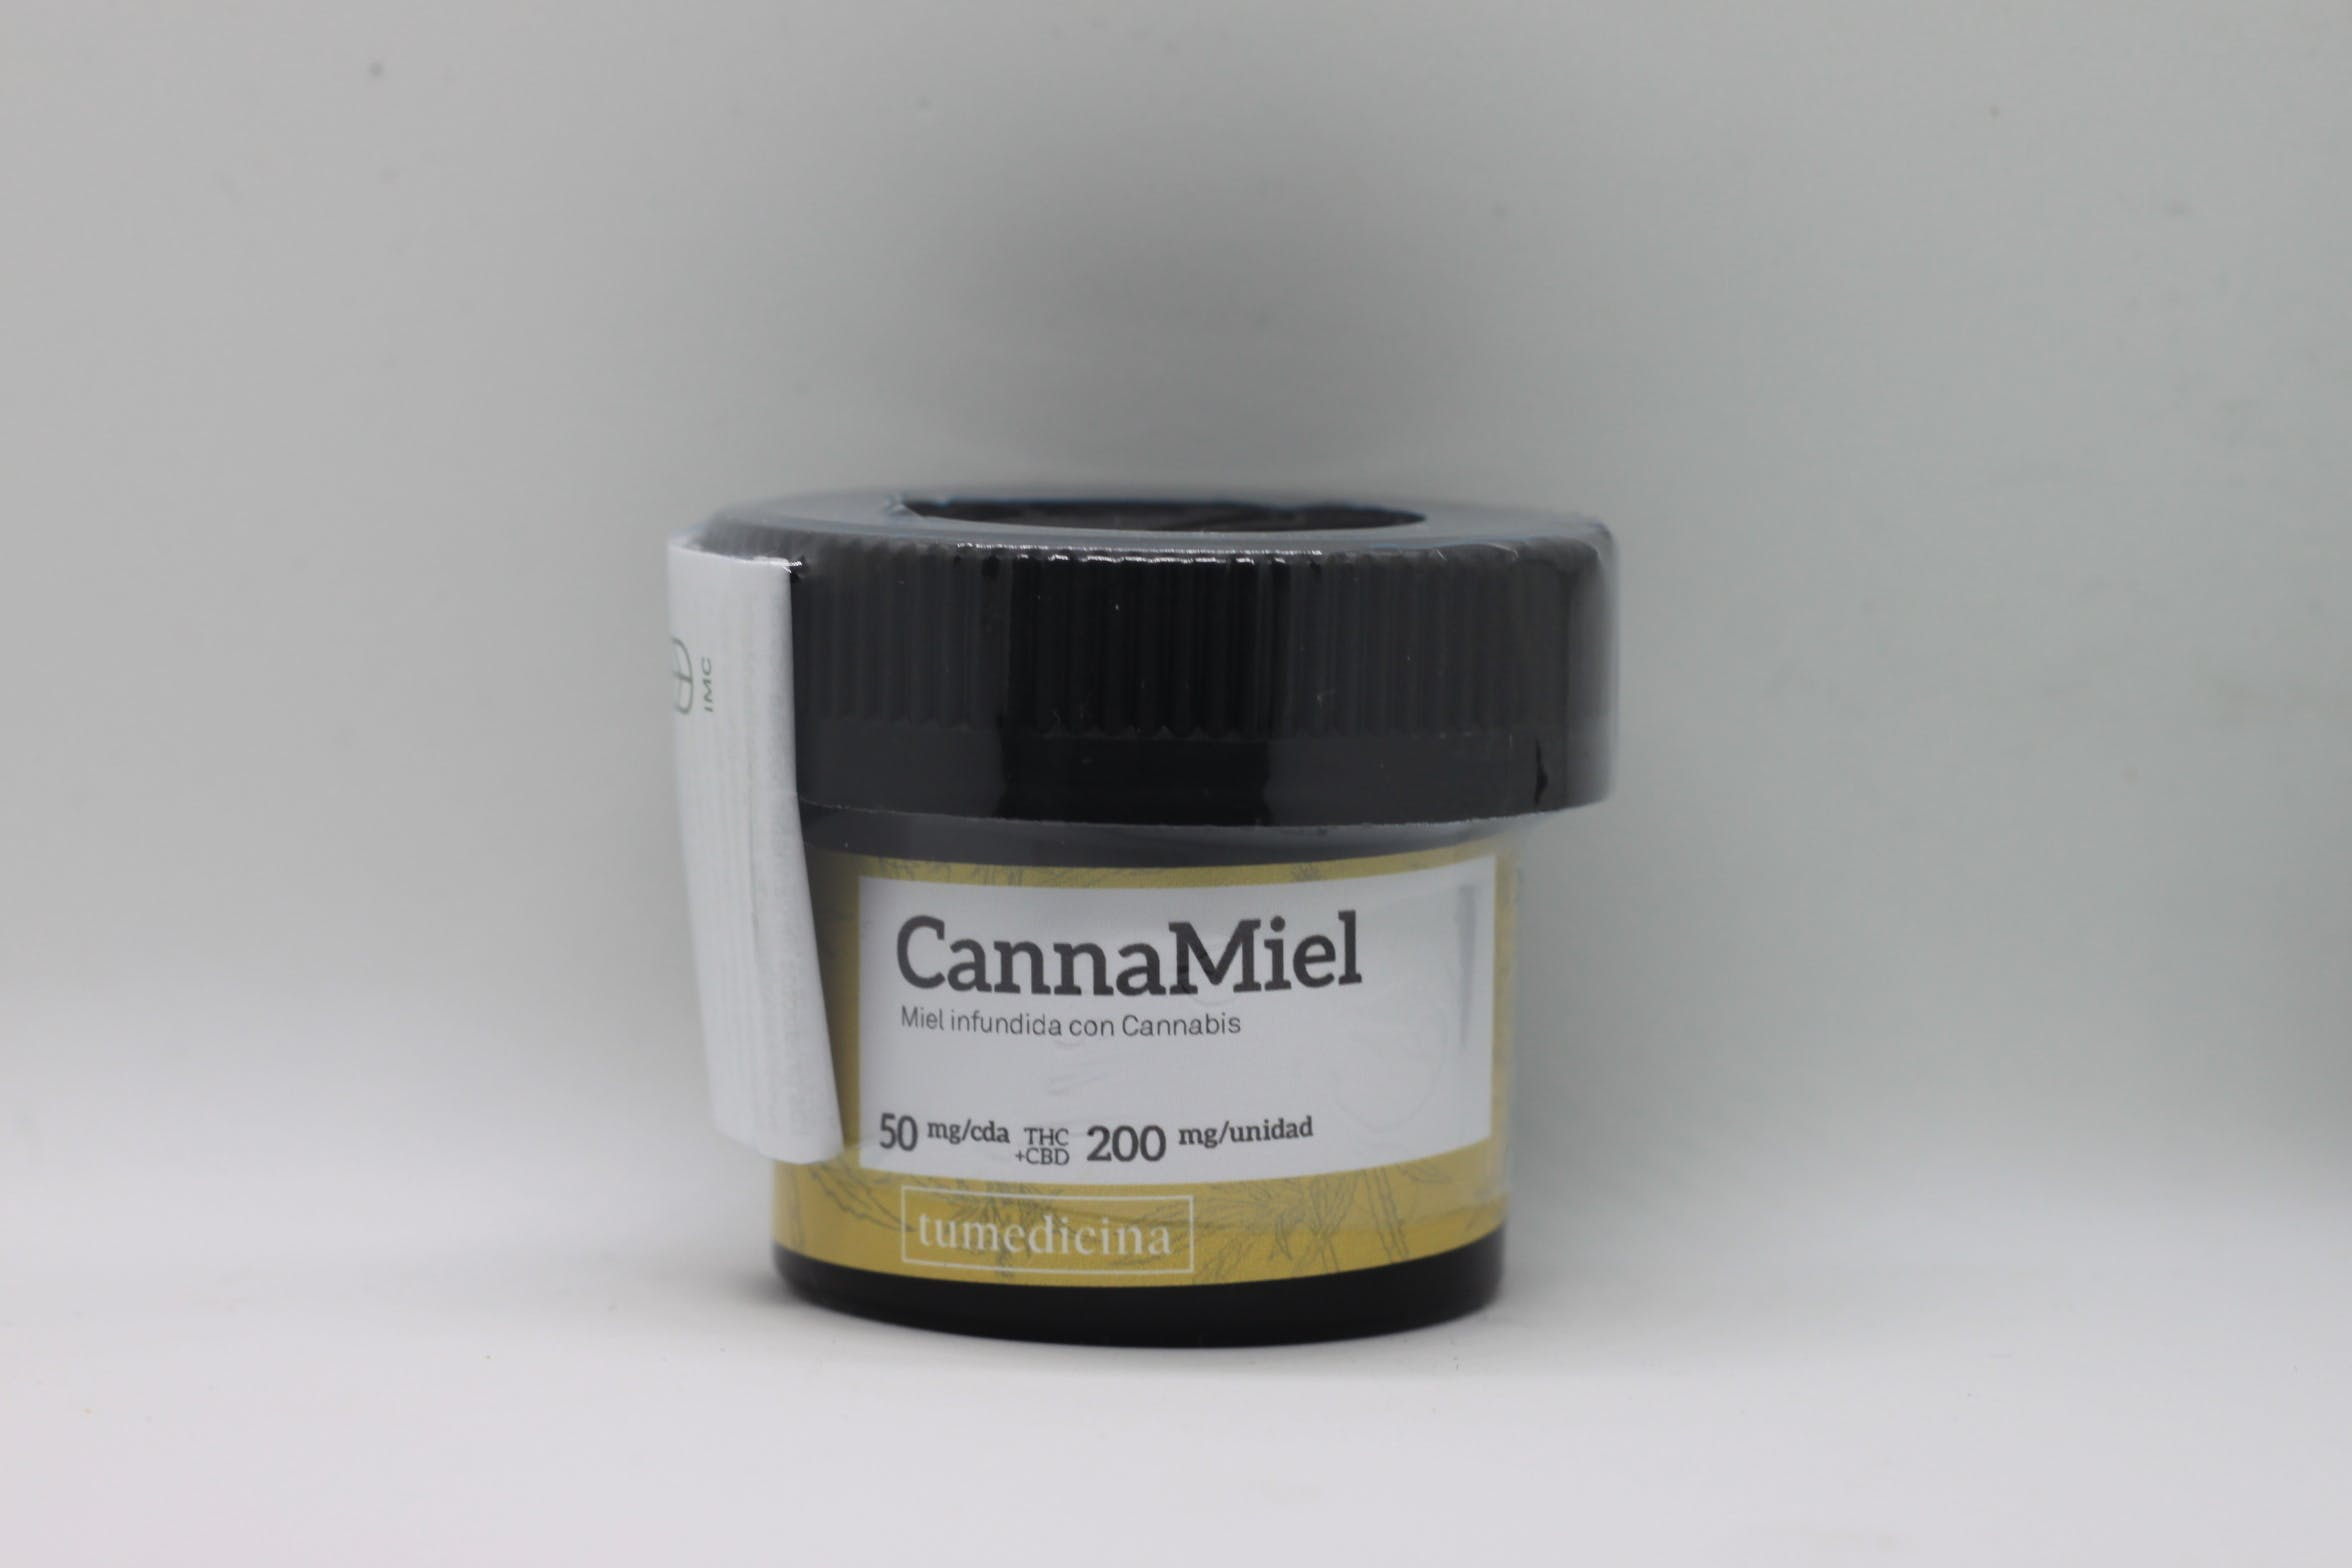 edible-cannamiel-with-cbd-50mg-tbsp-200mg-2oz